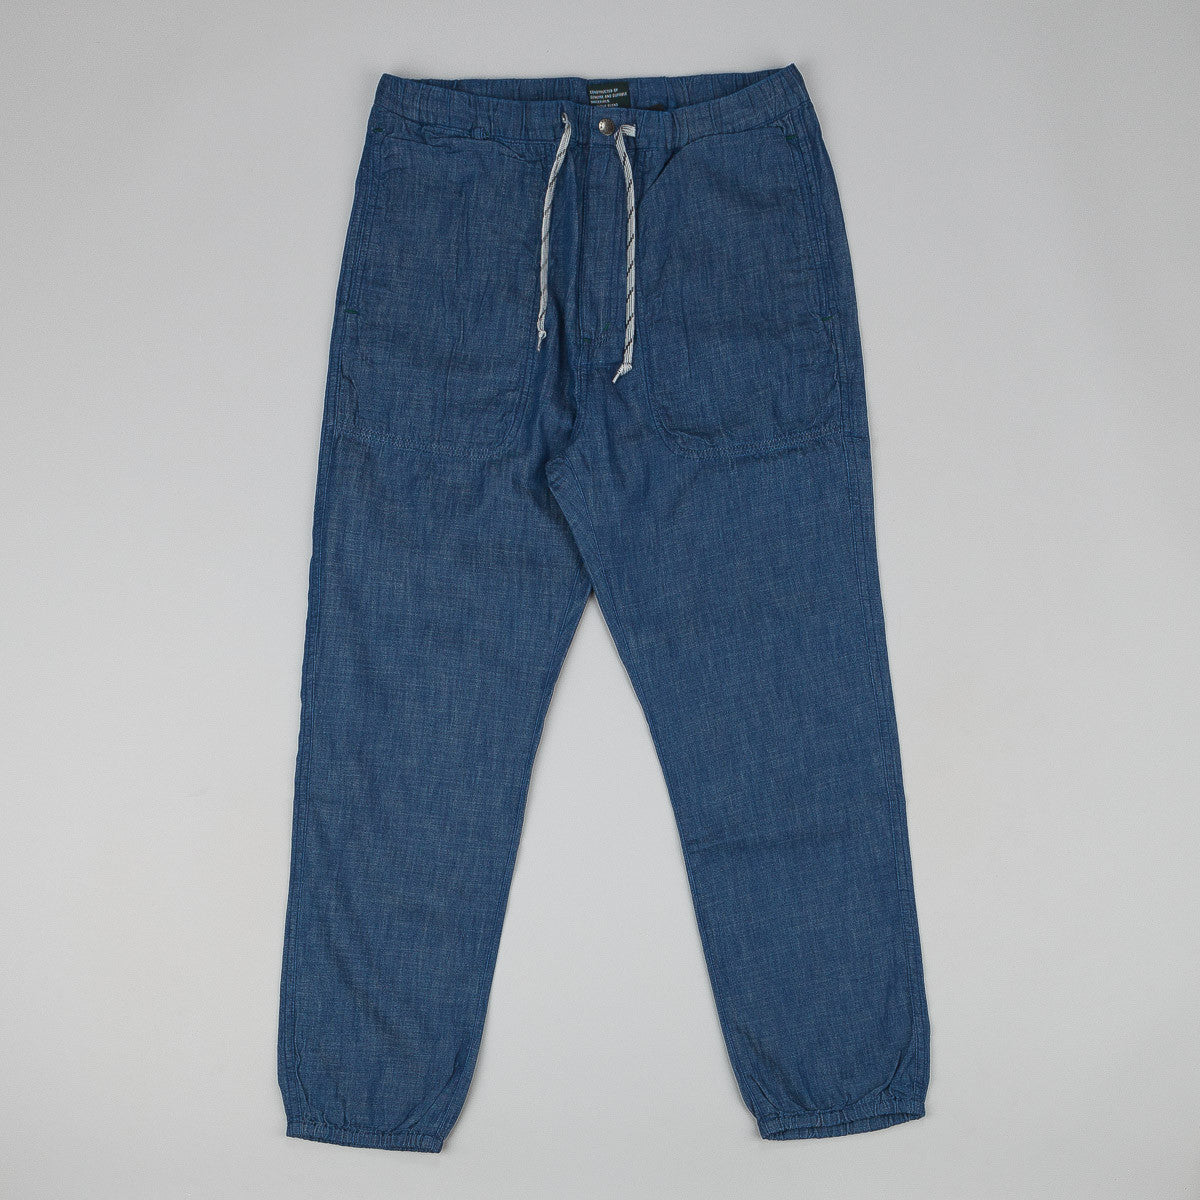 Manastash Denim B2B Sweatpants